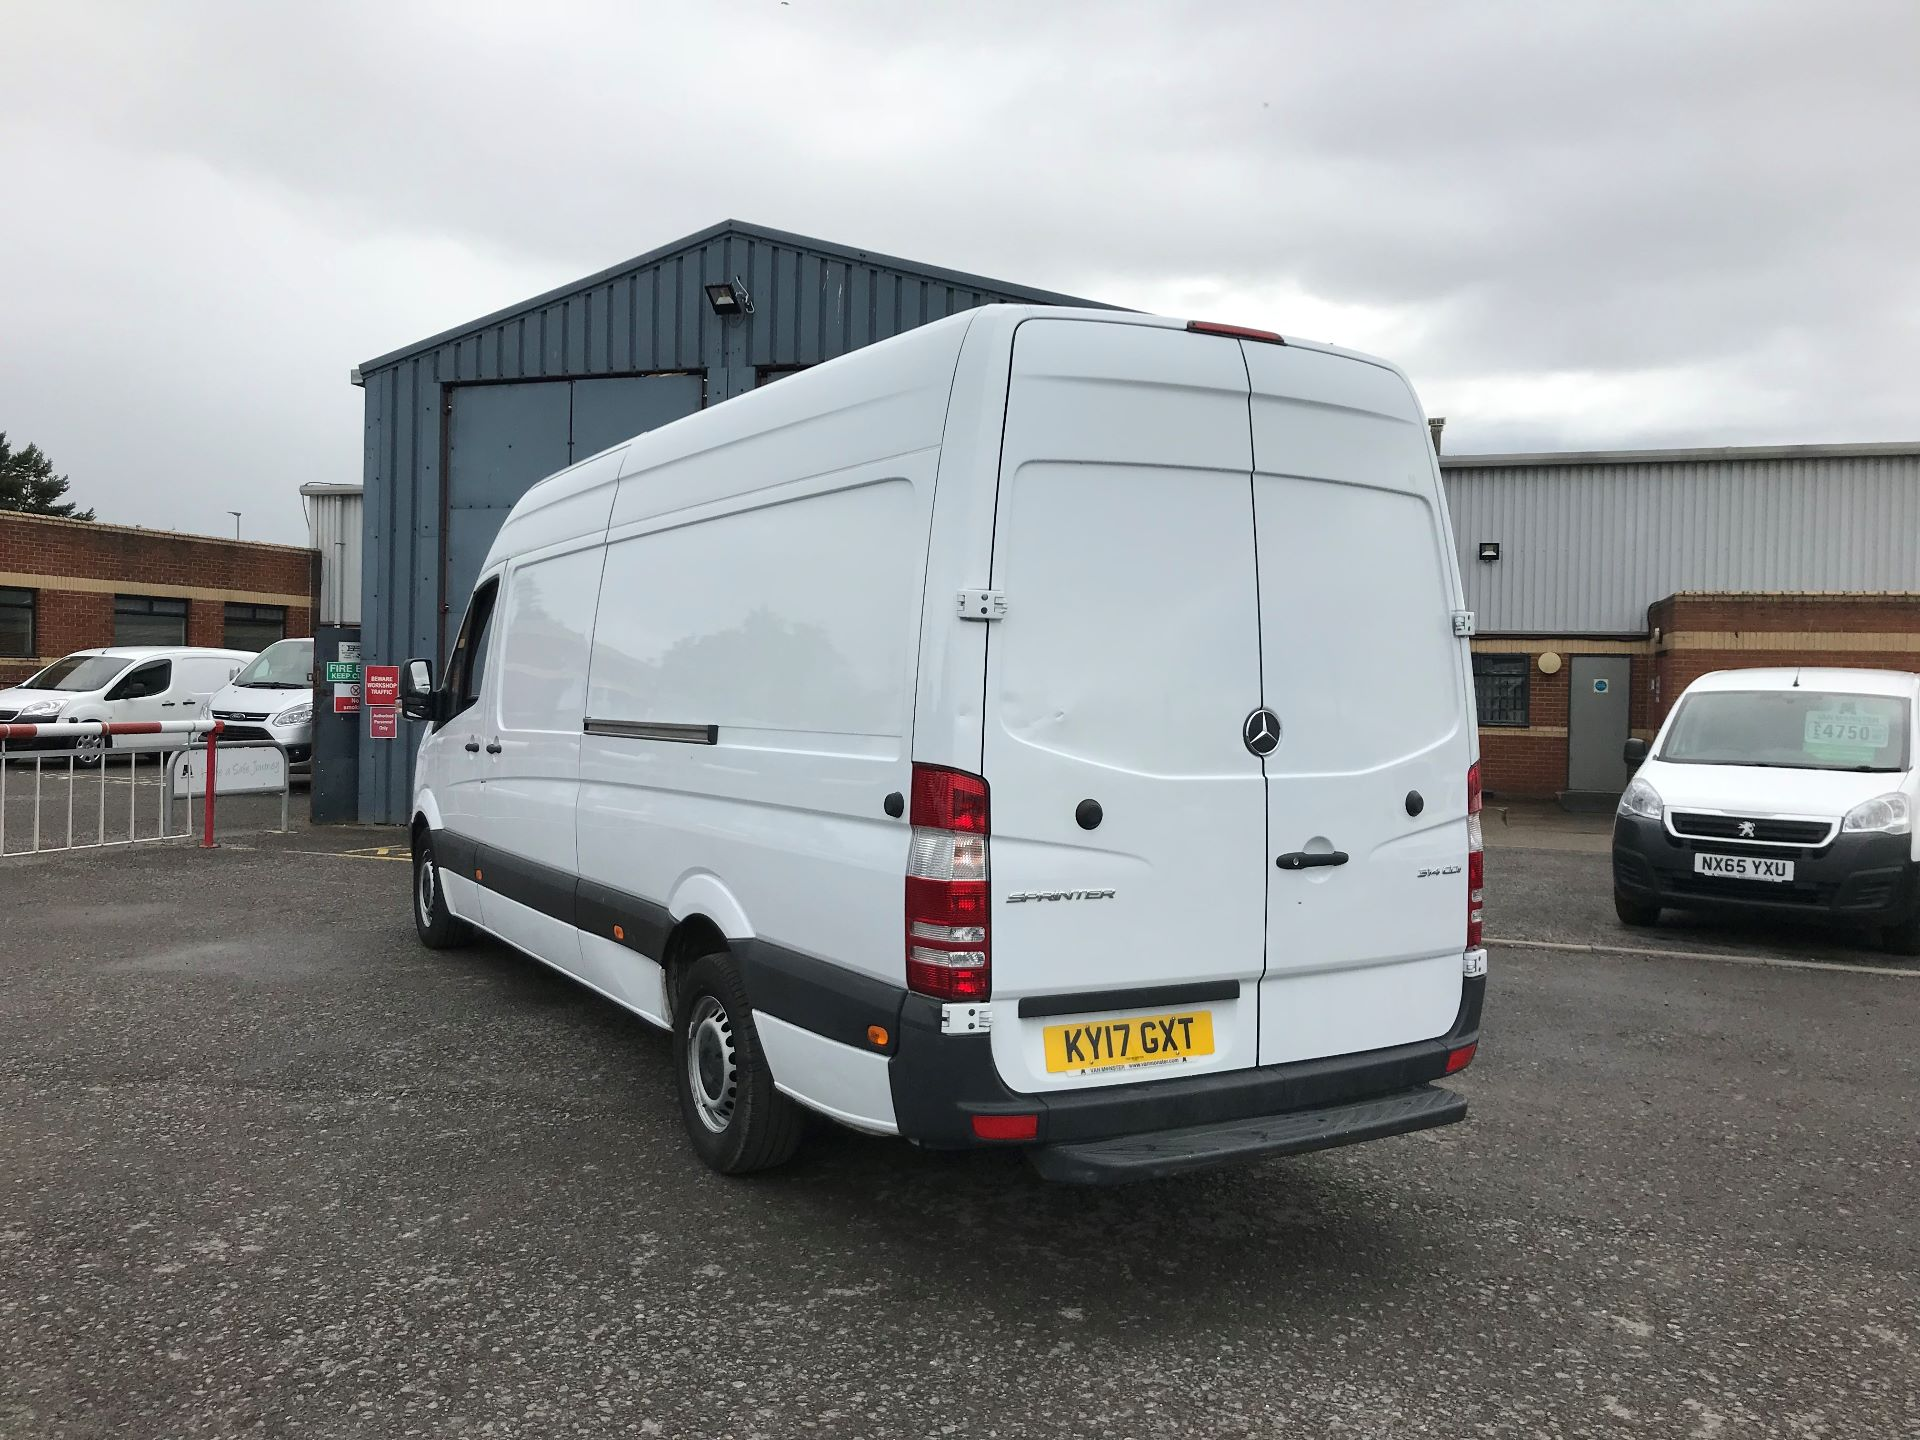 2017 Mercedes-Benz Sprinter 3.5T High Roof Van *VALUE RANGE VEHICLE CONDITION REFLECTED IN PRICE* (KY17GXT) Image 6